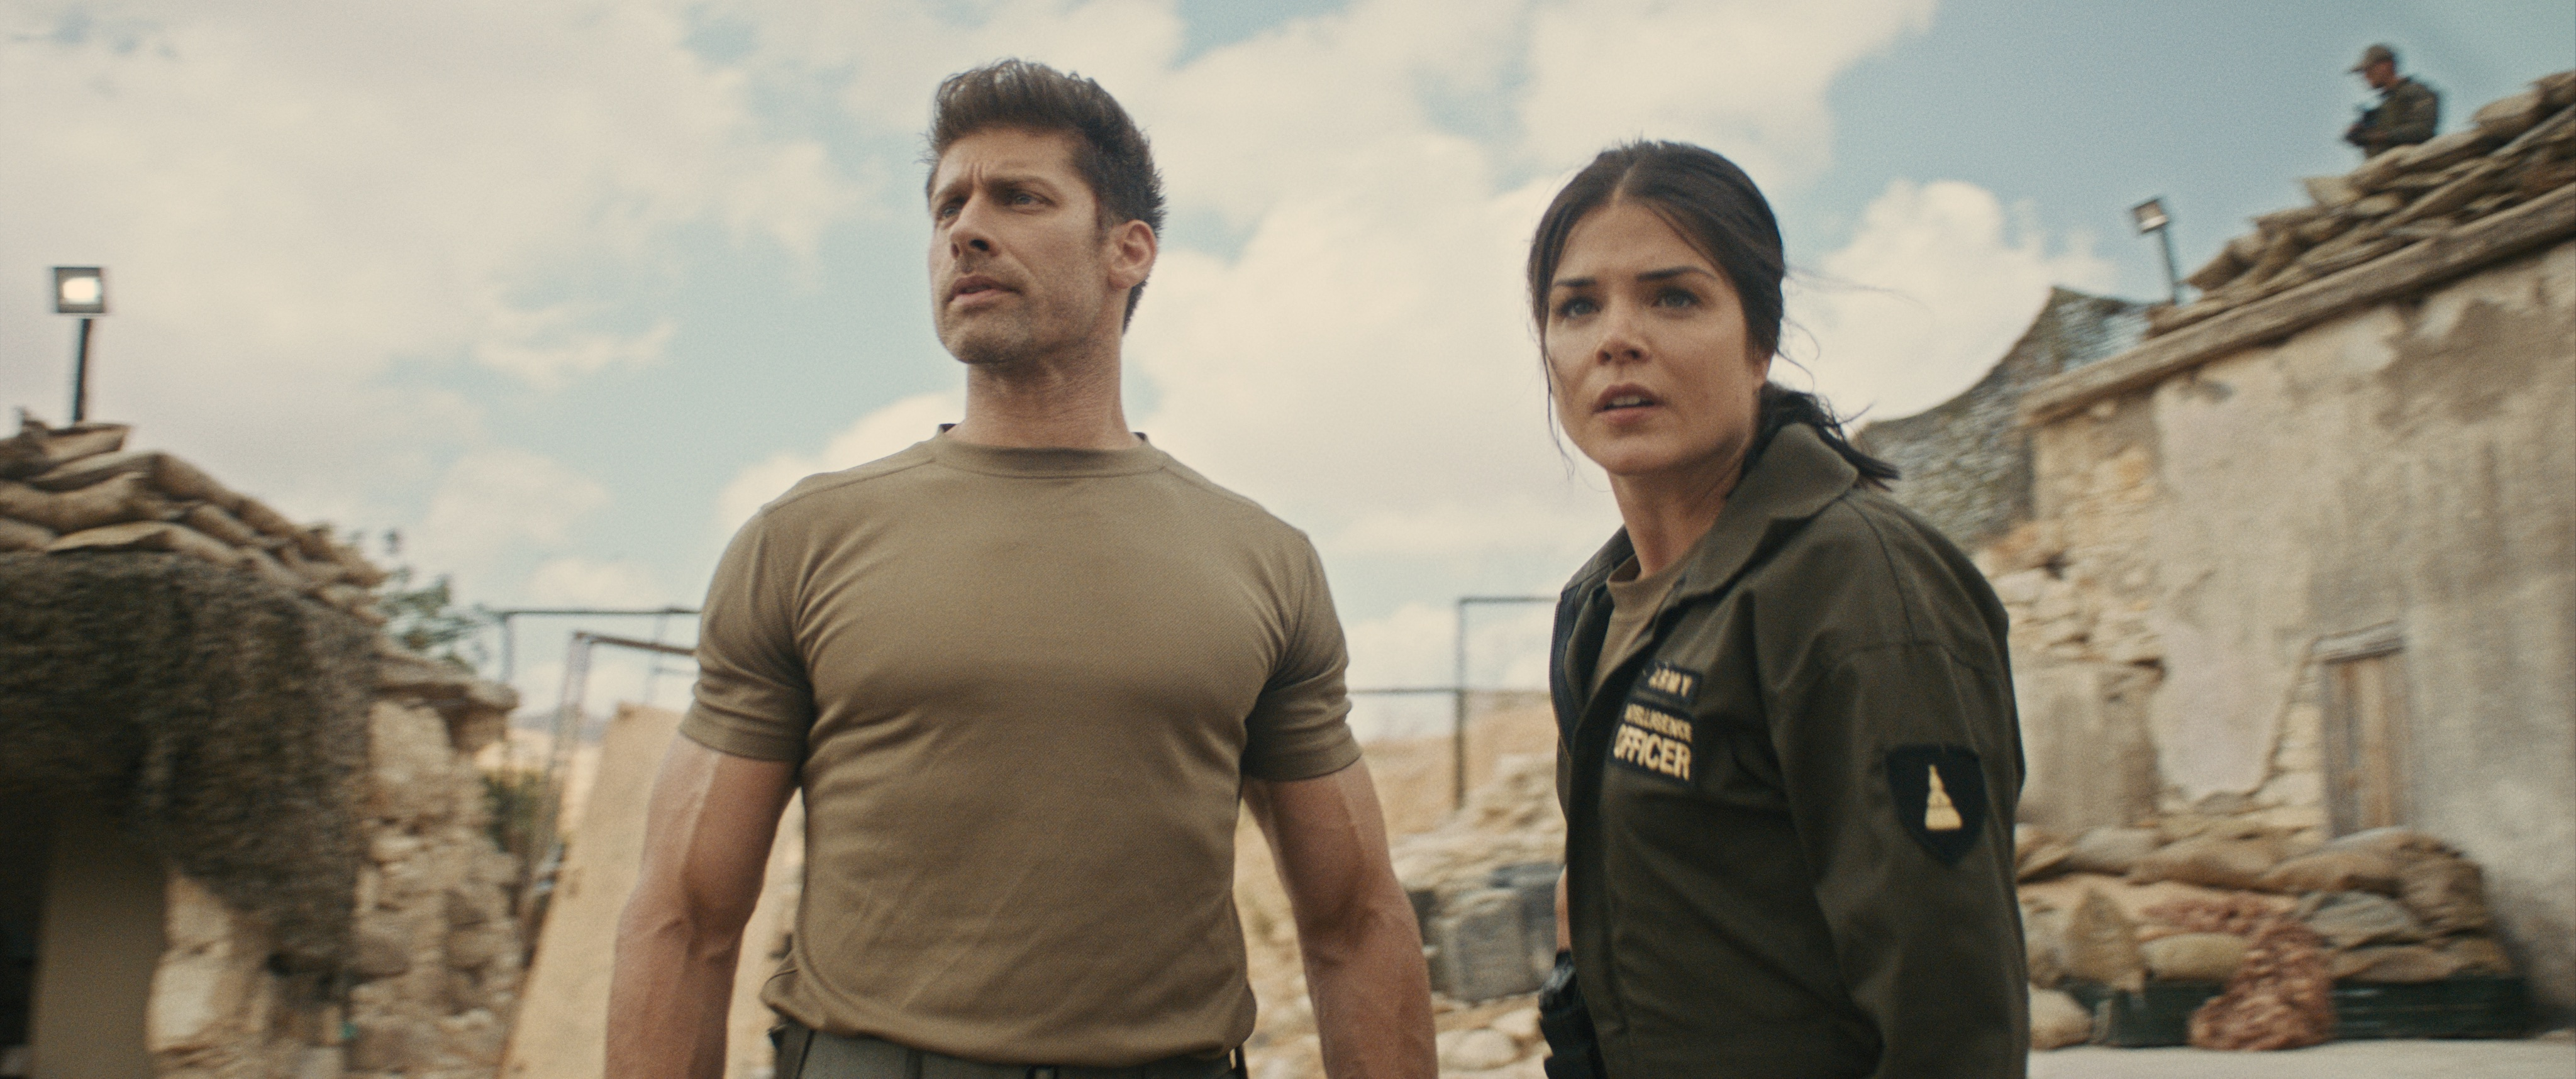 (L - R) Alain Moussi as Jake and Marie Avgeropoulos as Myra in the action/sci - fi film, JIU JITSU , The Avenue release. Photo courtesy of The Avenue